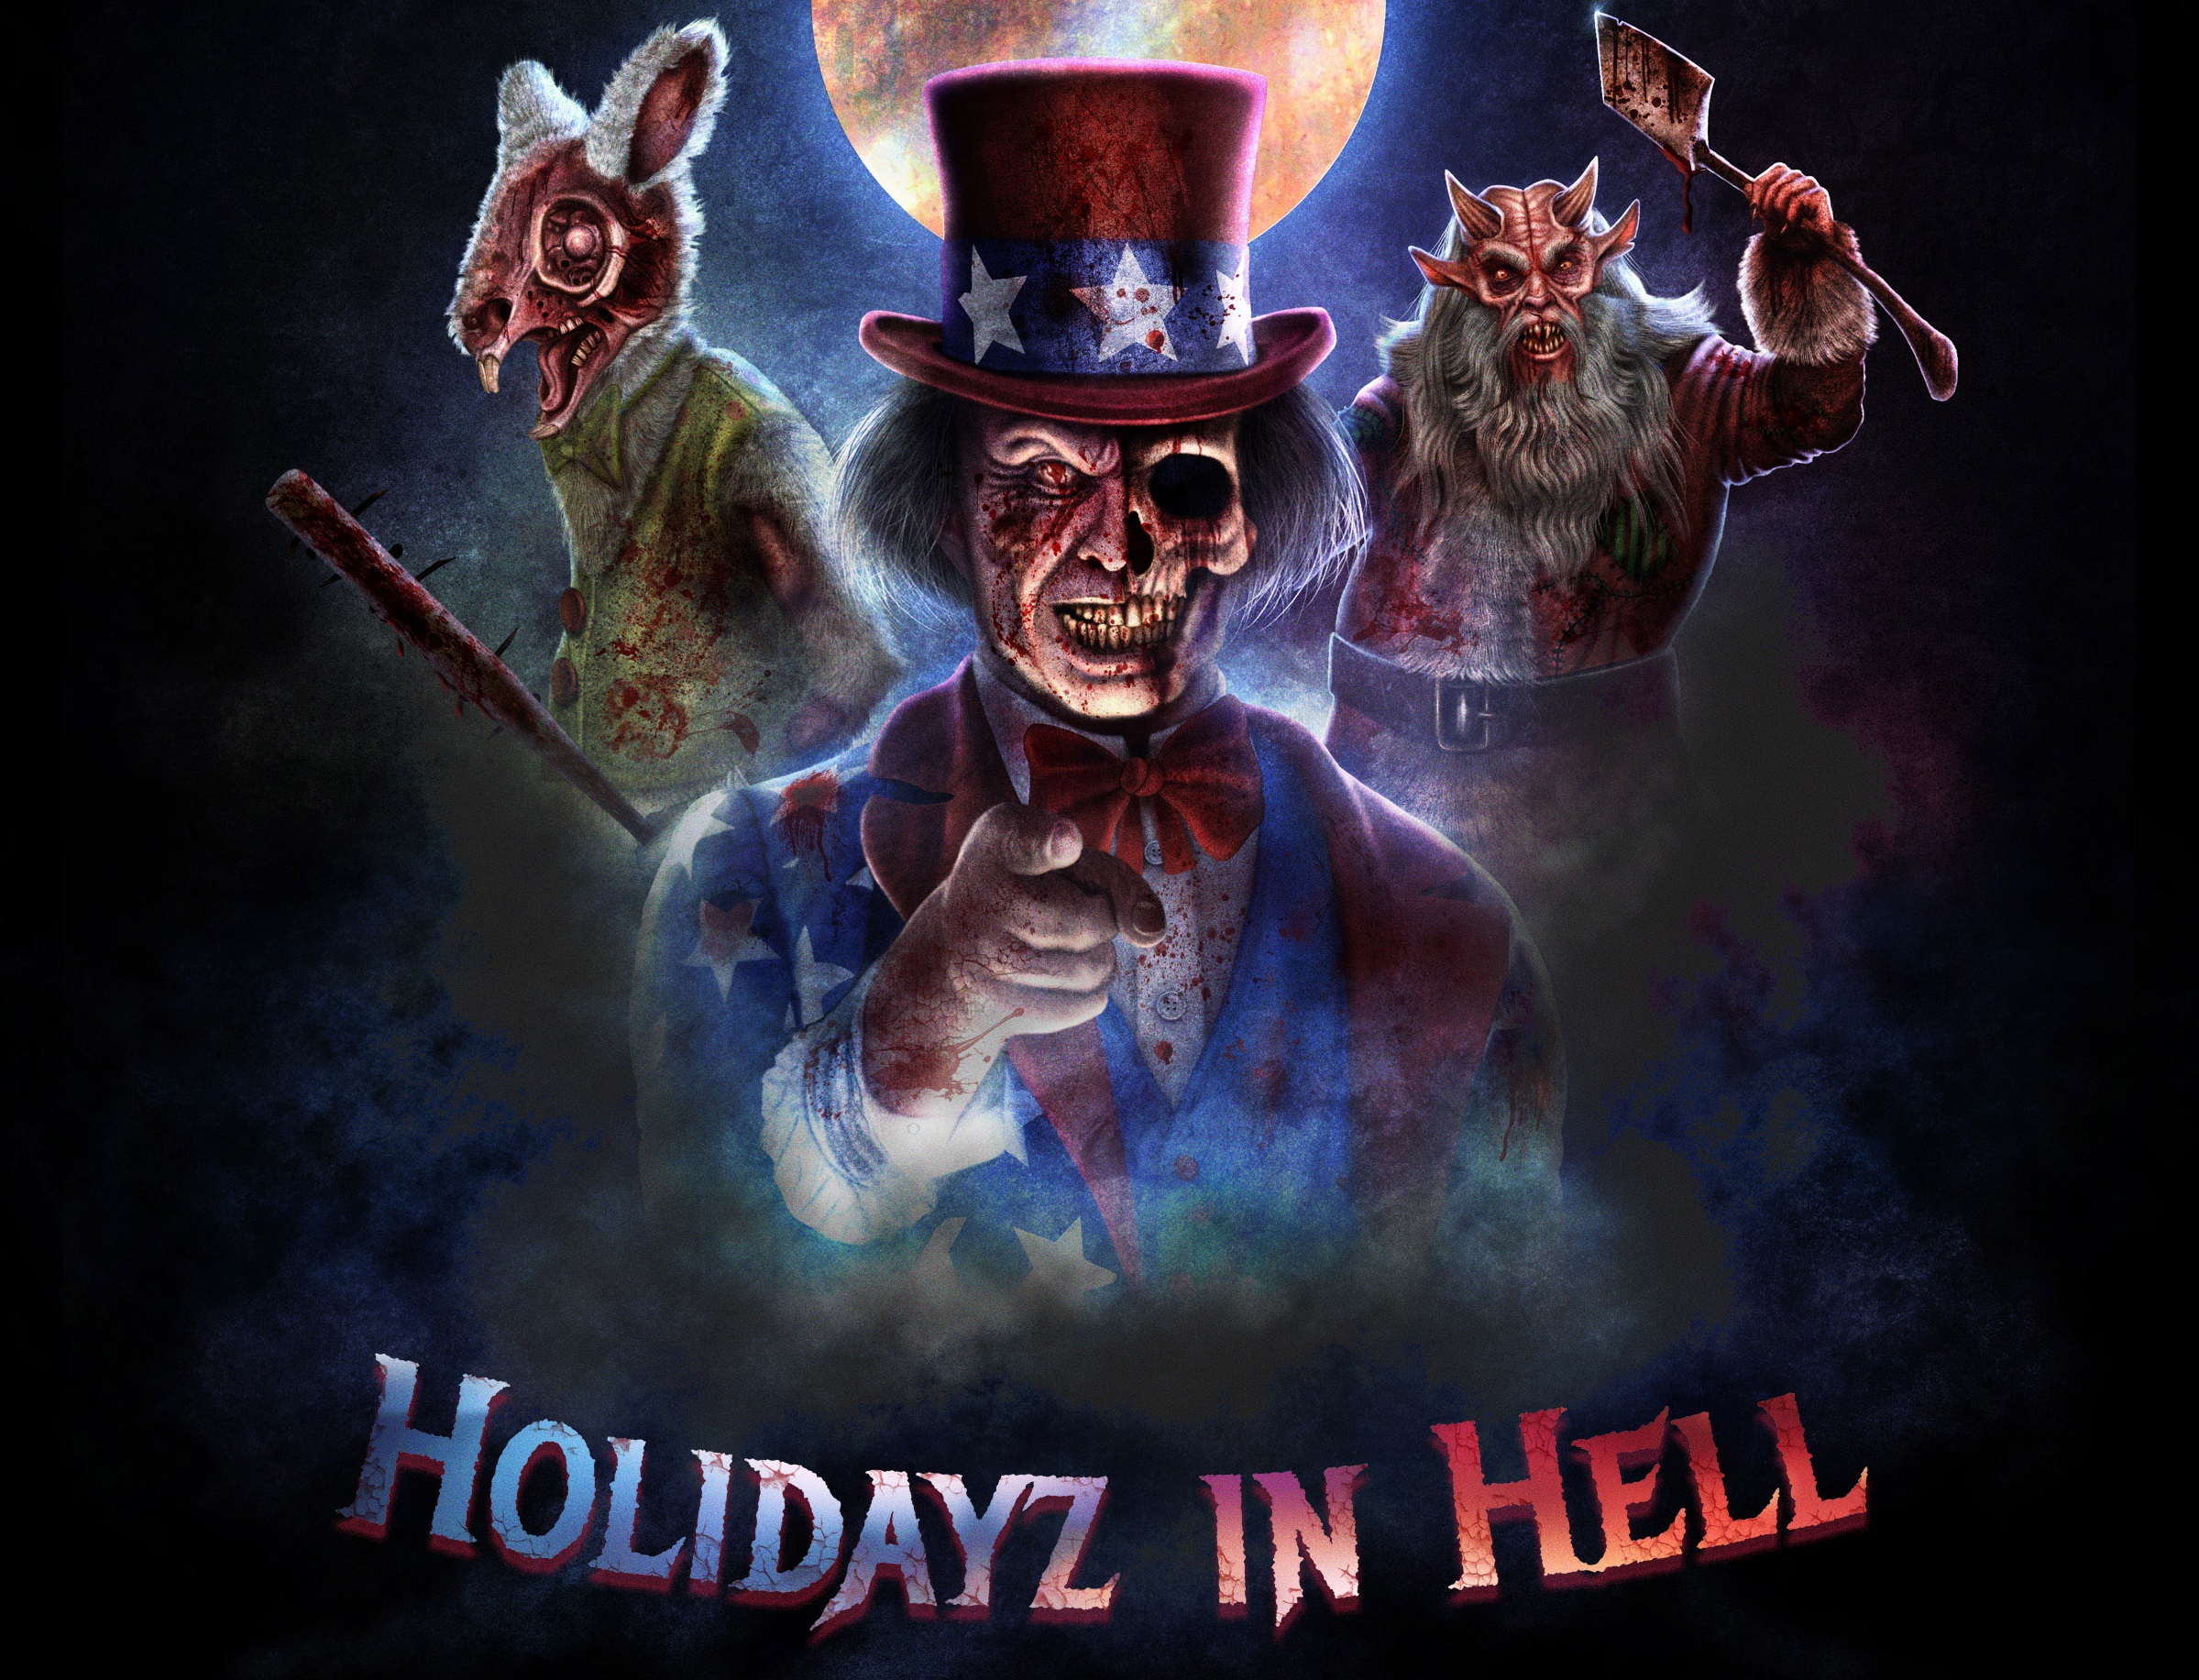 Holidayz in Hell haunted house announced for Halloween